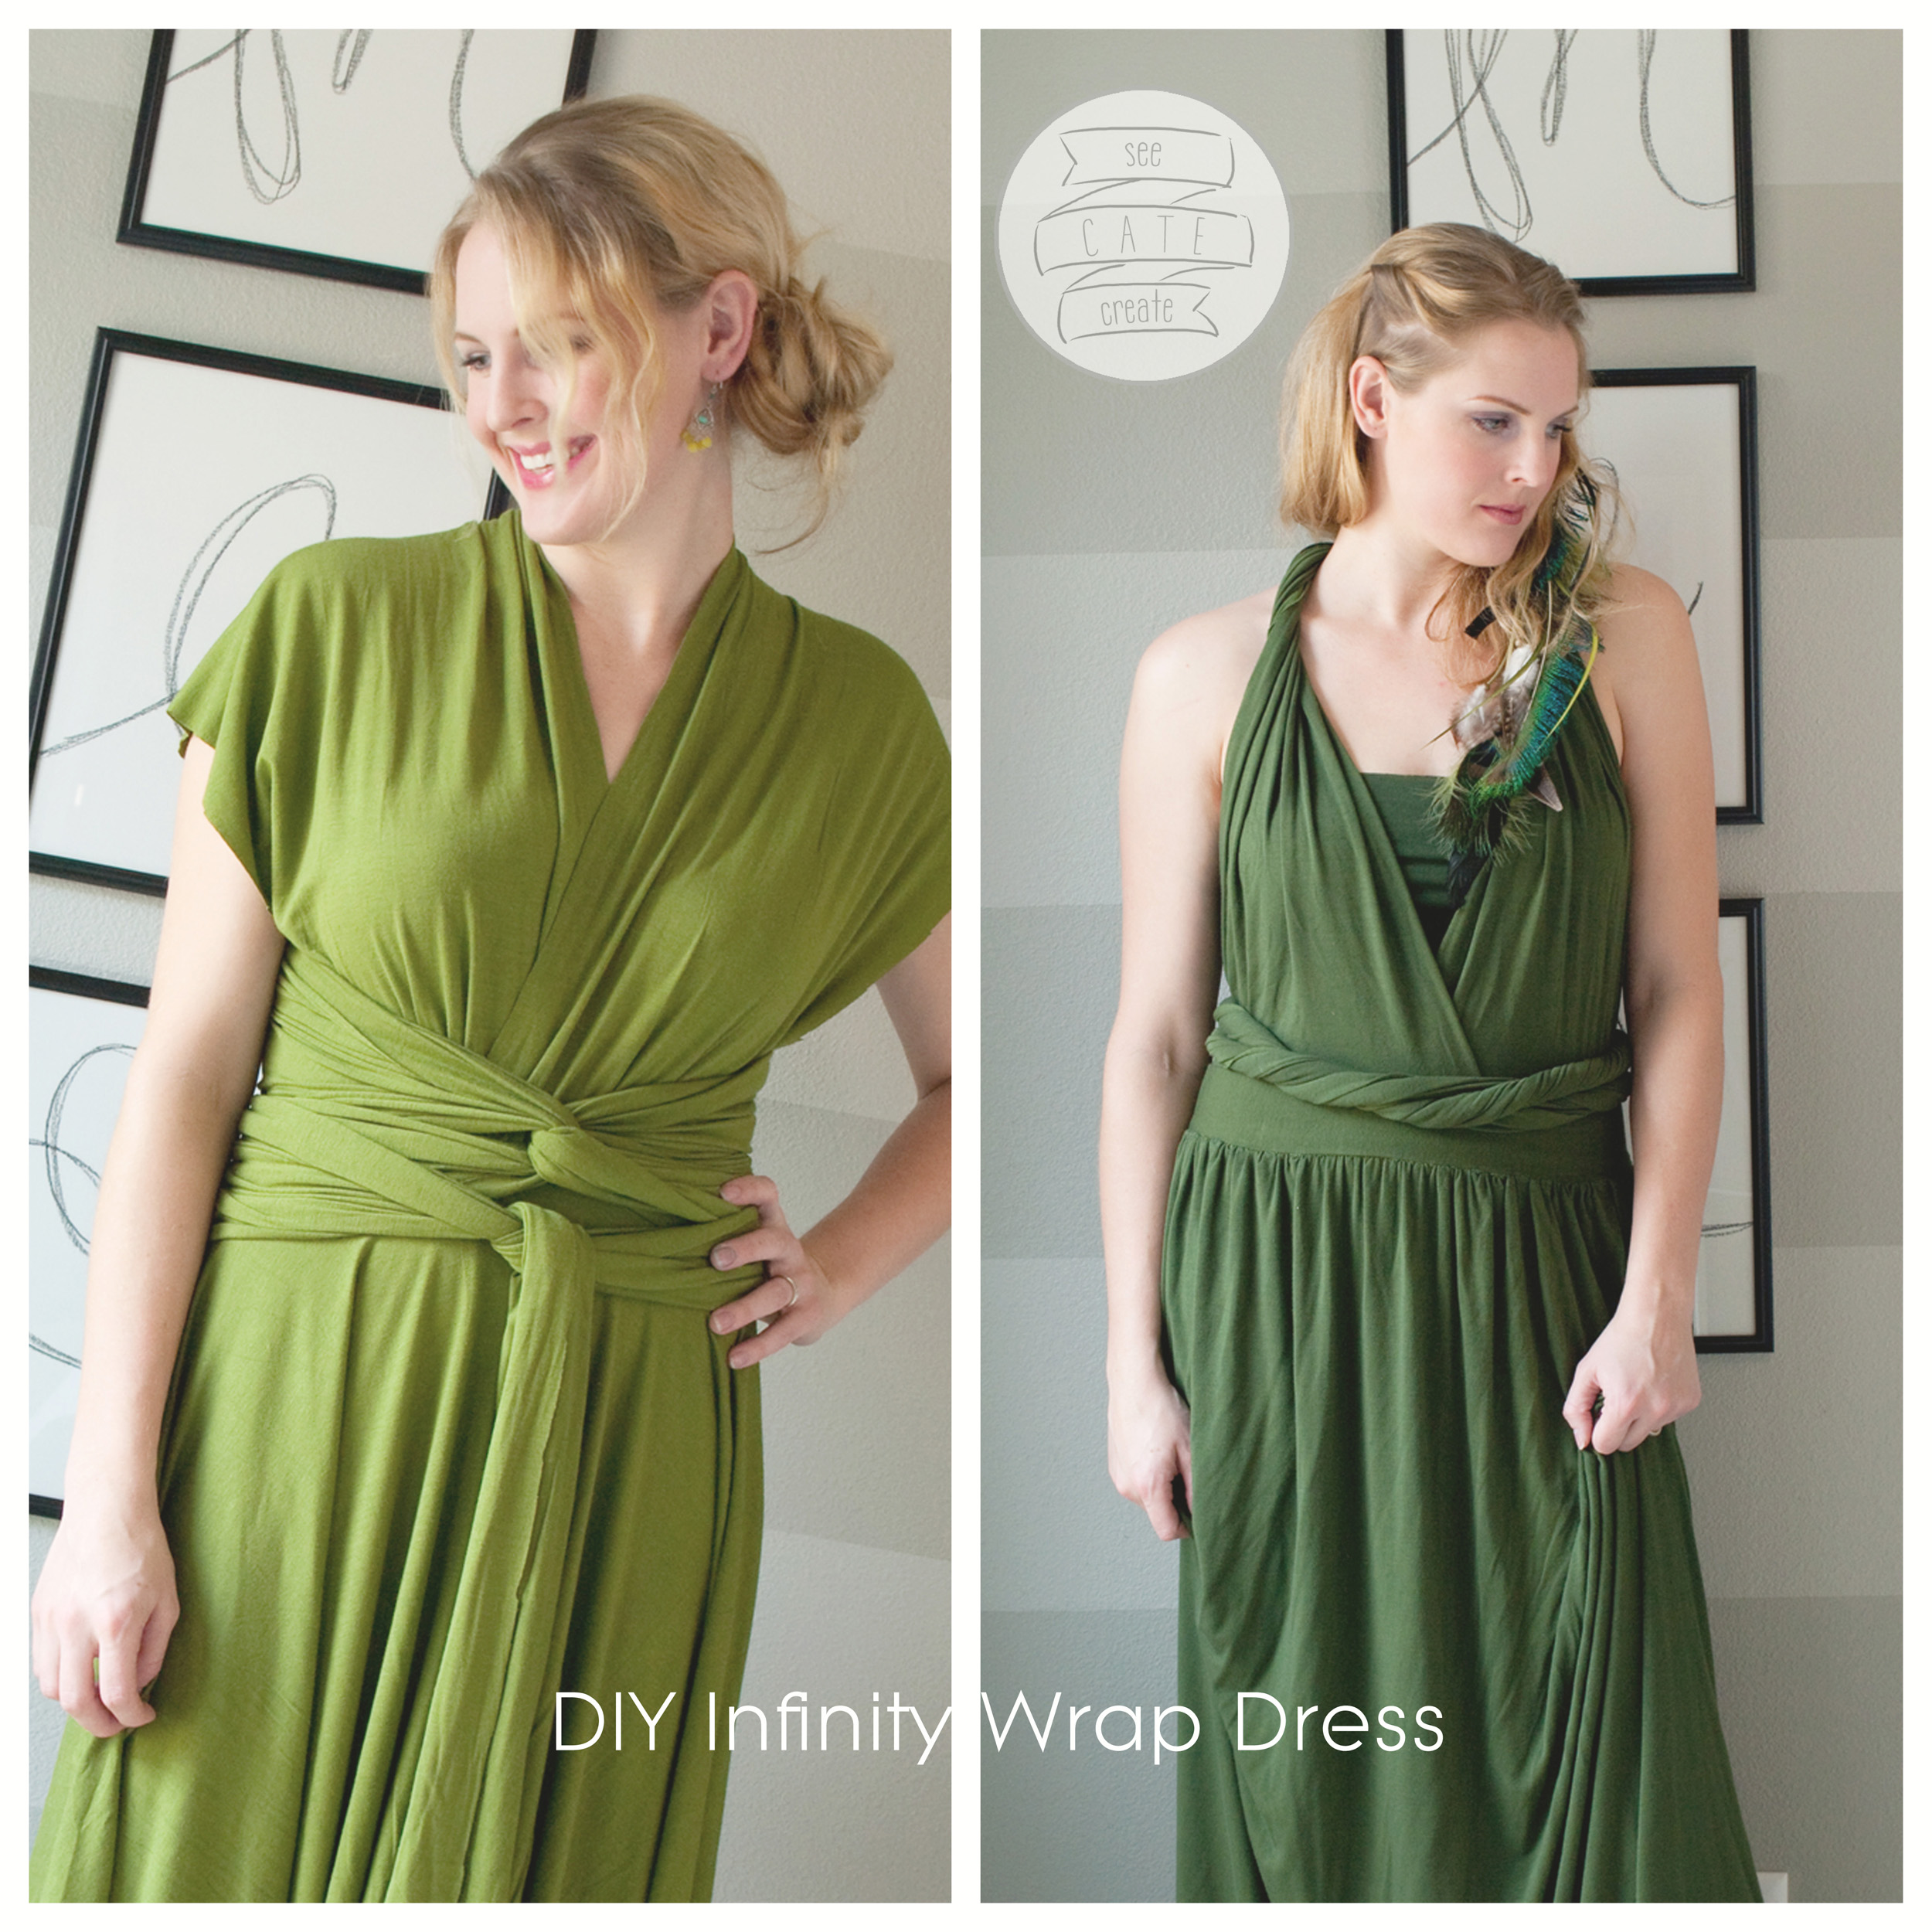 DIY Infinity Wrap Dress